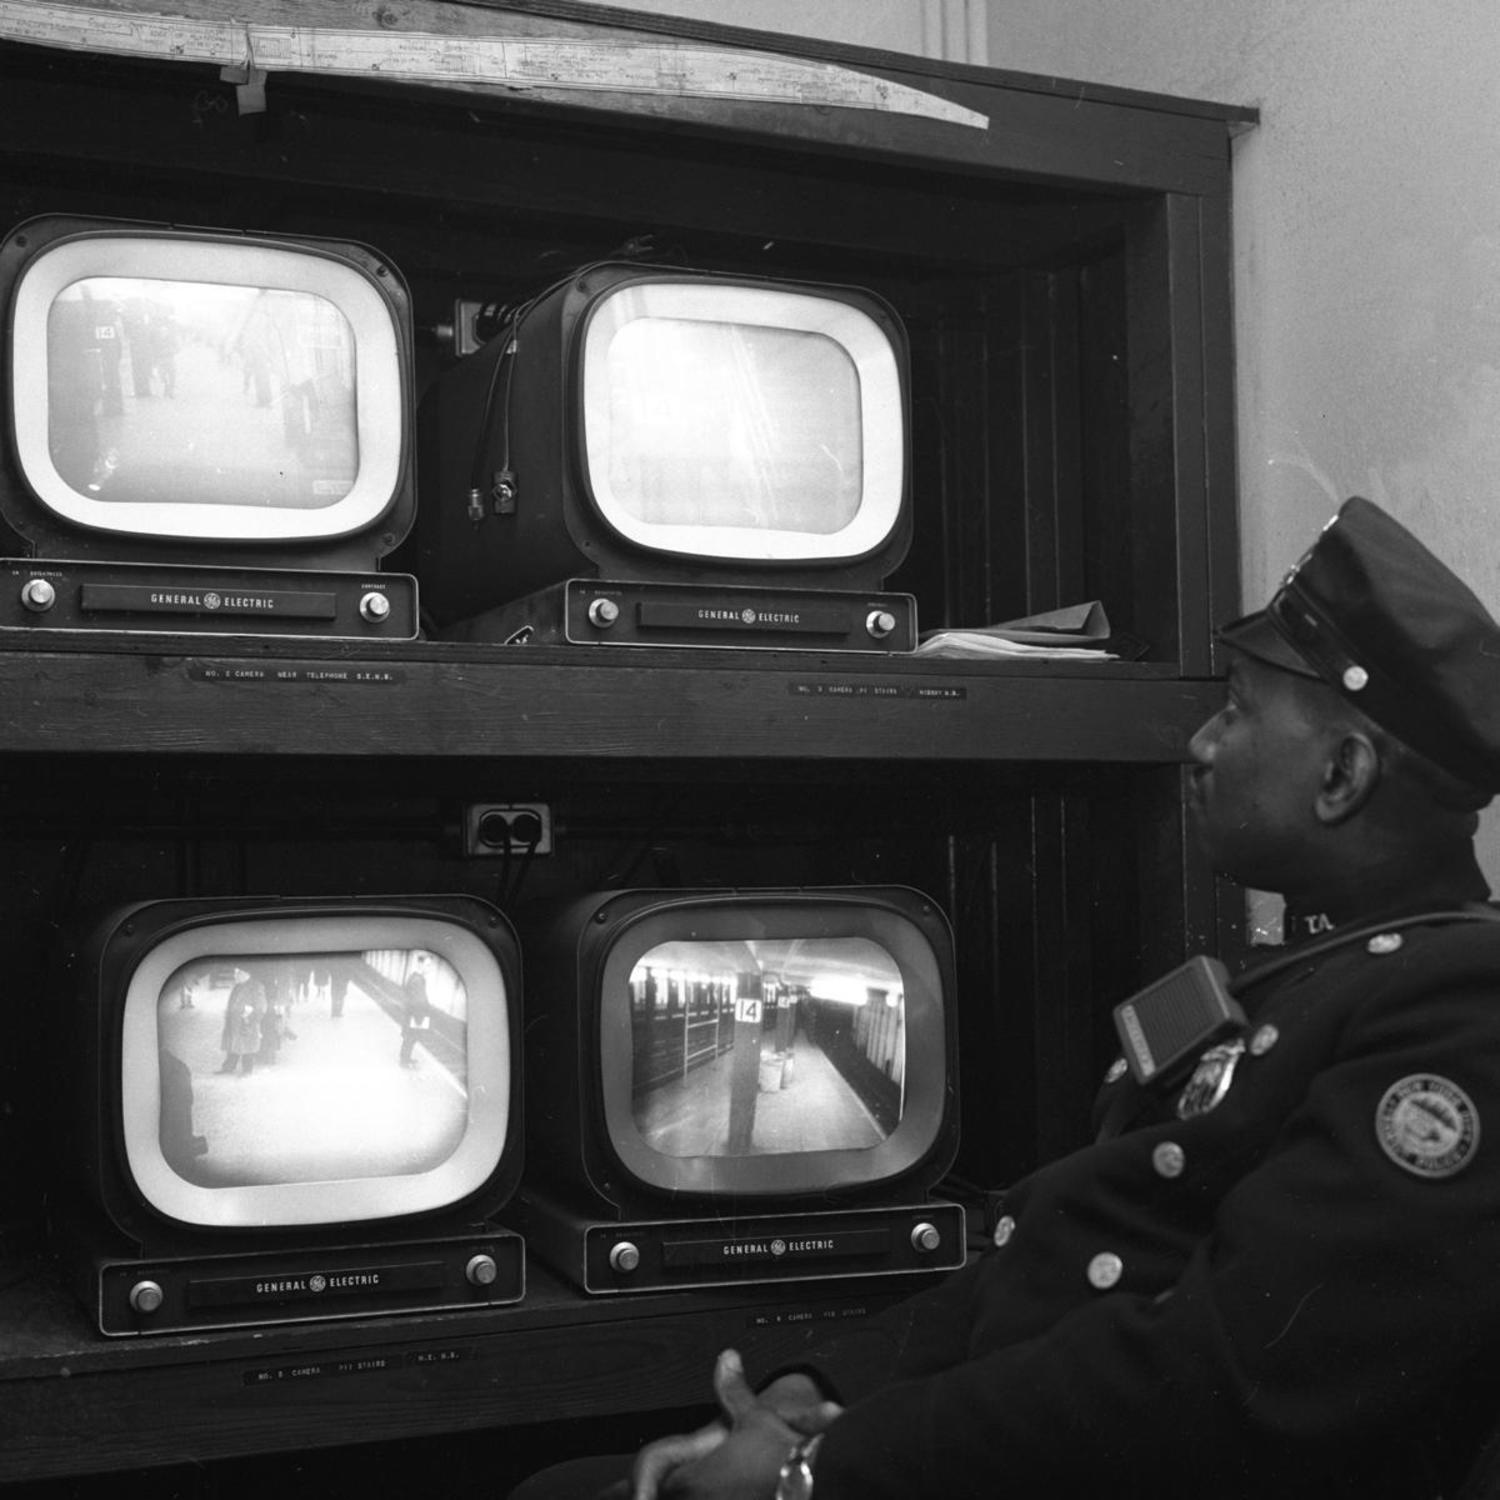 1960's: Transit Authority Patrolman Harold Reed has his eyes glued on TV monitors that provide different views of the 14th St. subway station in order to alert police of problem areas and deter crime.